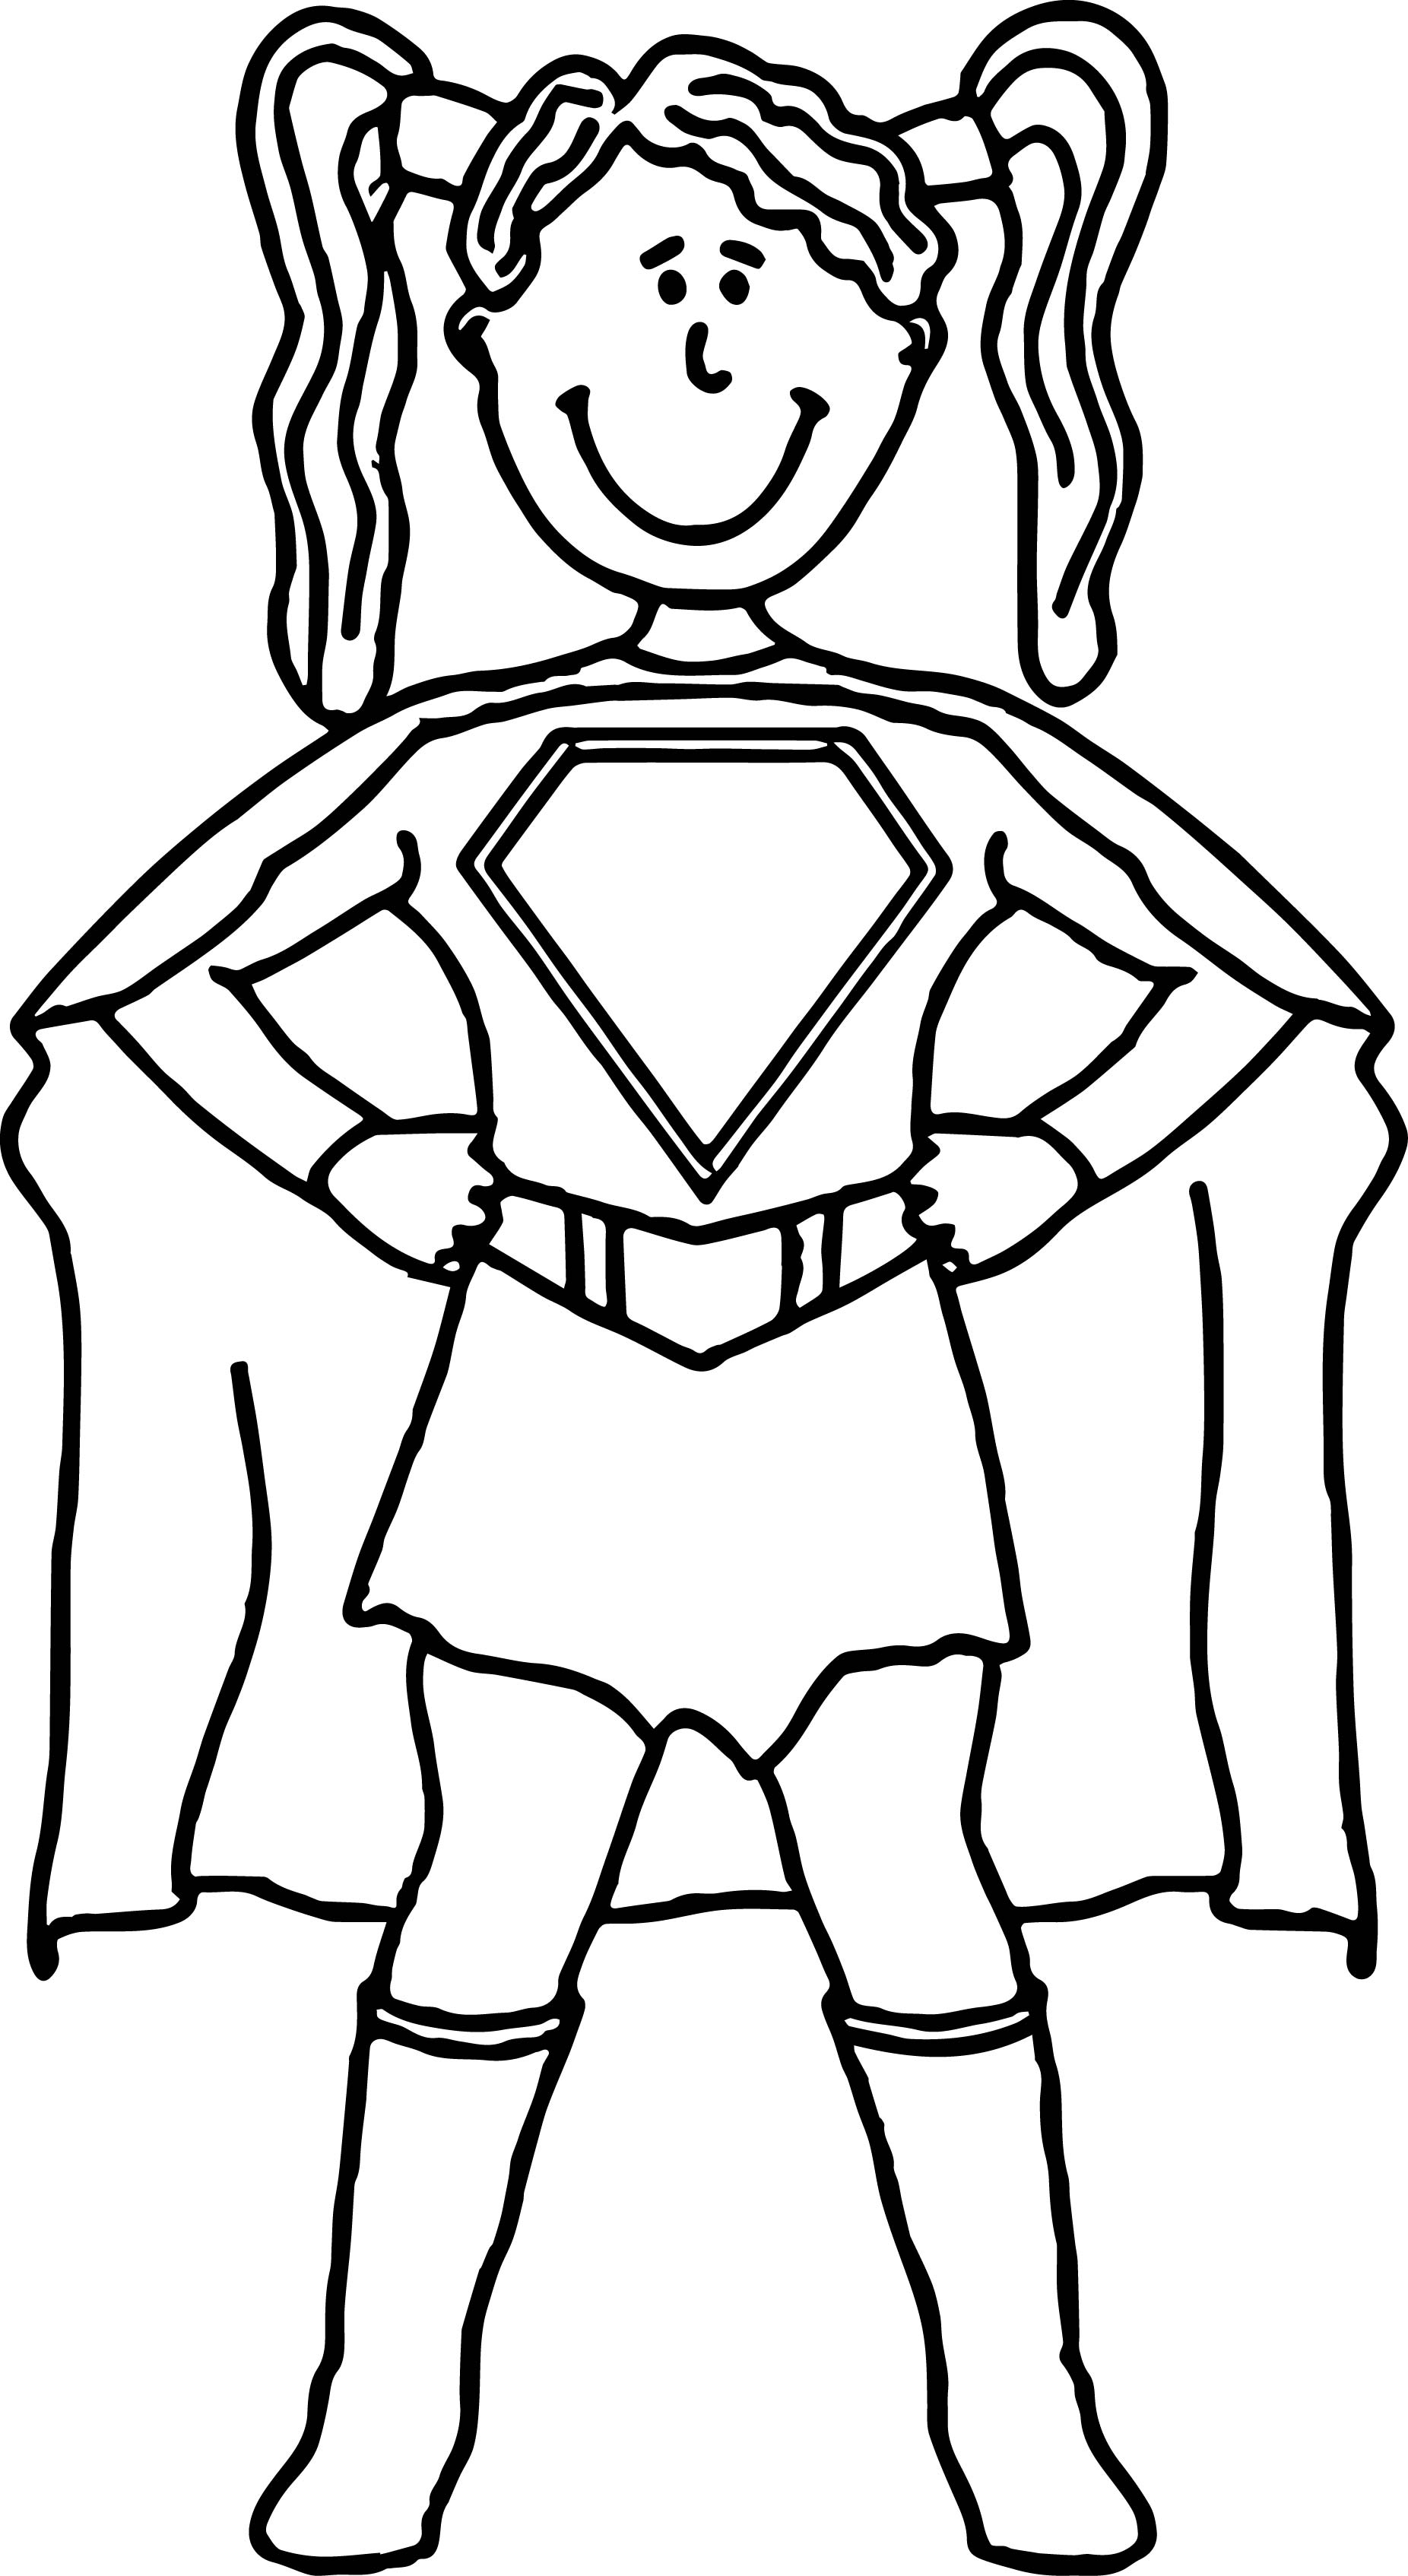 Superheroes Super Hero Girl Coloring Page Wecoloringpage